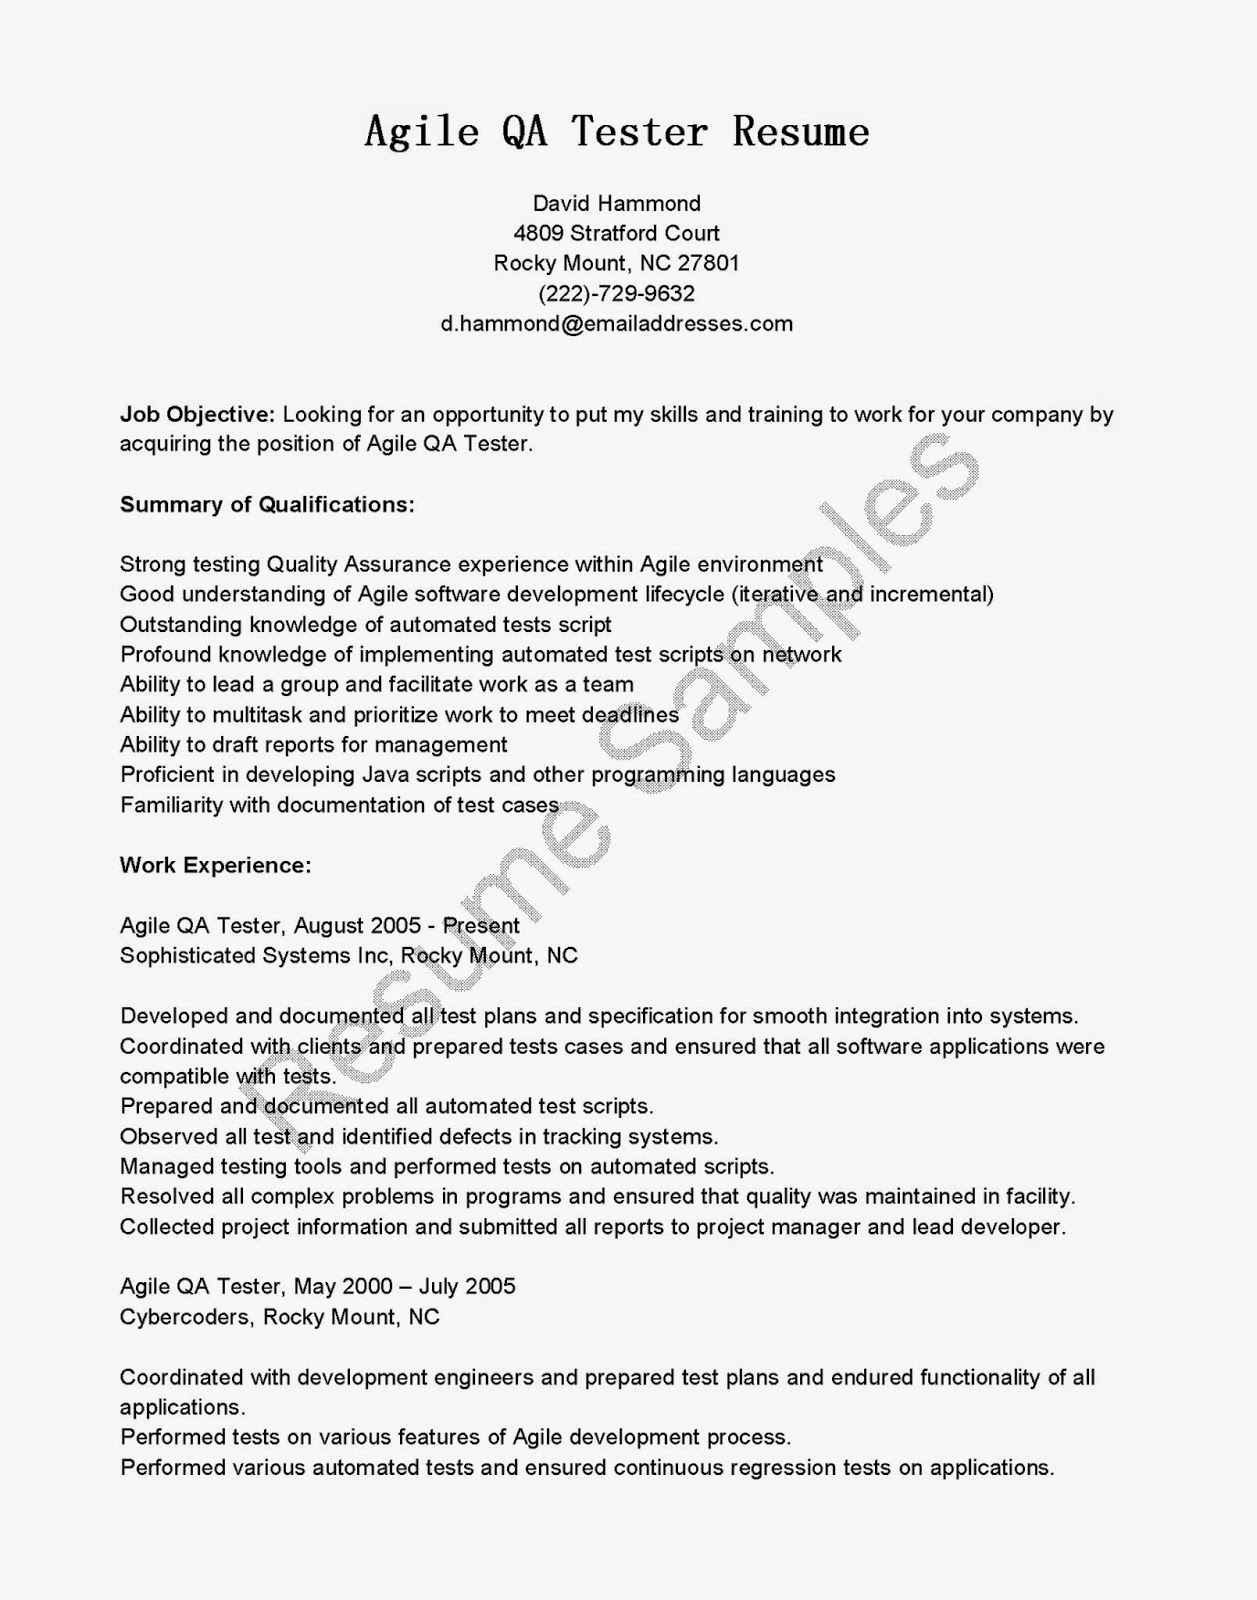 resume samples  agile qa tester resume